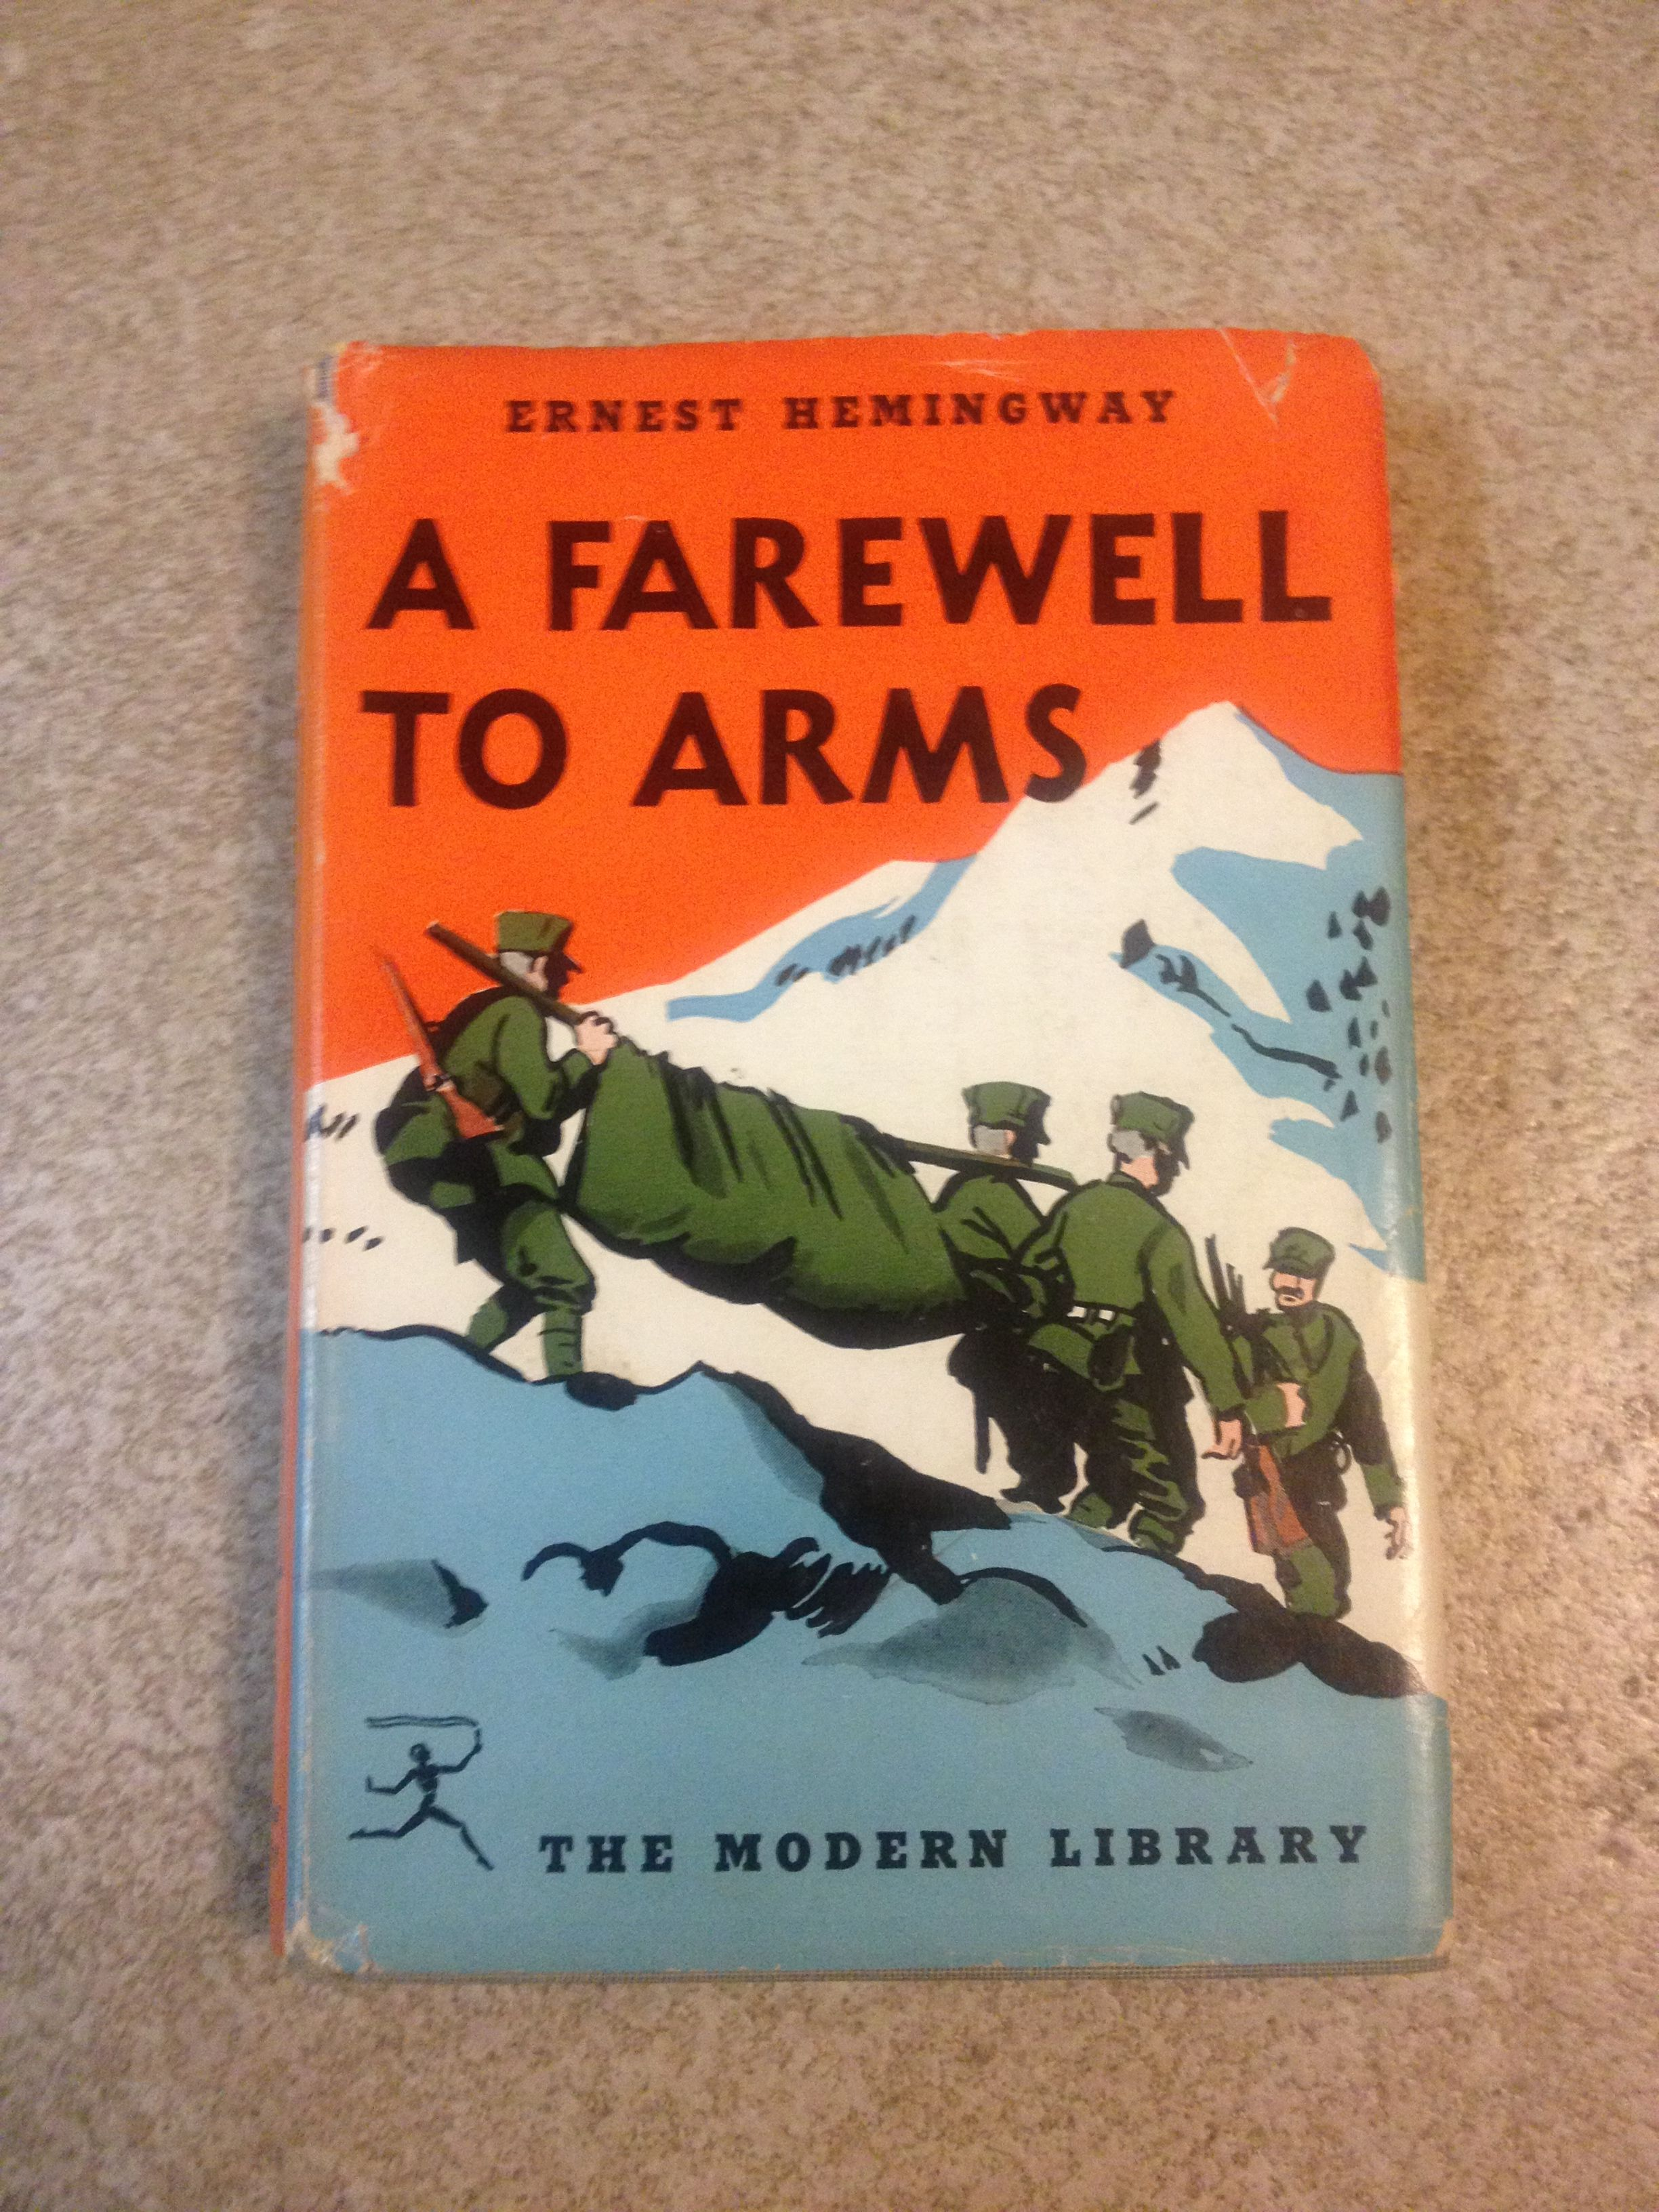 analysis of a farewell to arms by ernest hemingway Love versus lust the deconstructive analysis toward ernest hemingway's novel a farewell to arms love versus lust the deconstructive analysis toward ernest hemingway's novel a farewell to arms submitted to fulfill the final assignment of mata kuliah kajian sastra inggris mutakhir magister ilmu susastra.